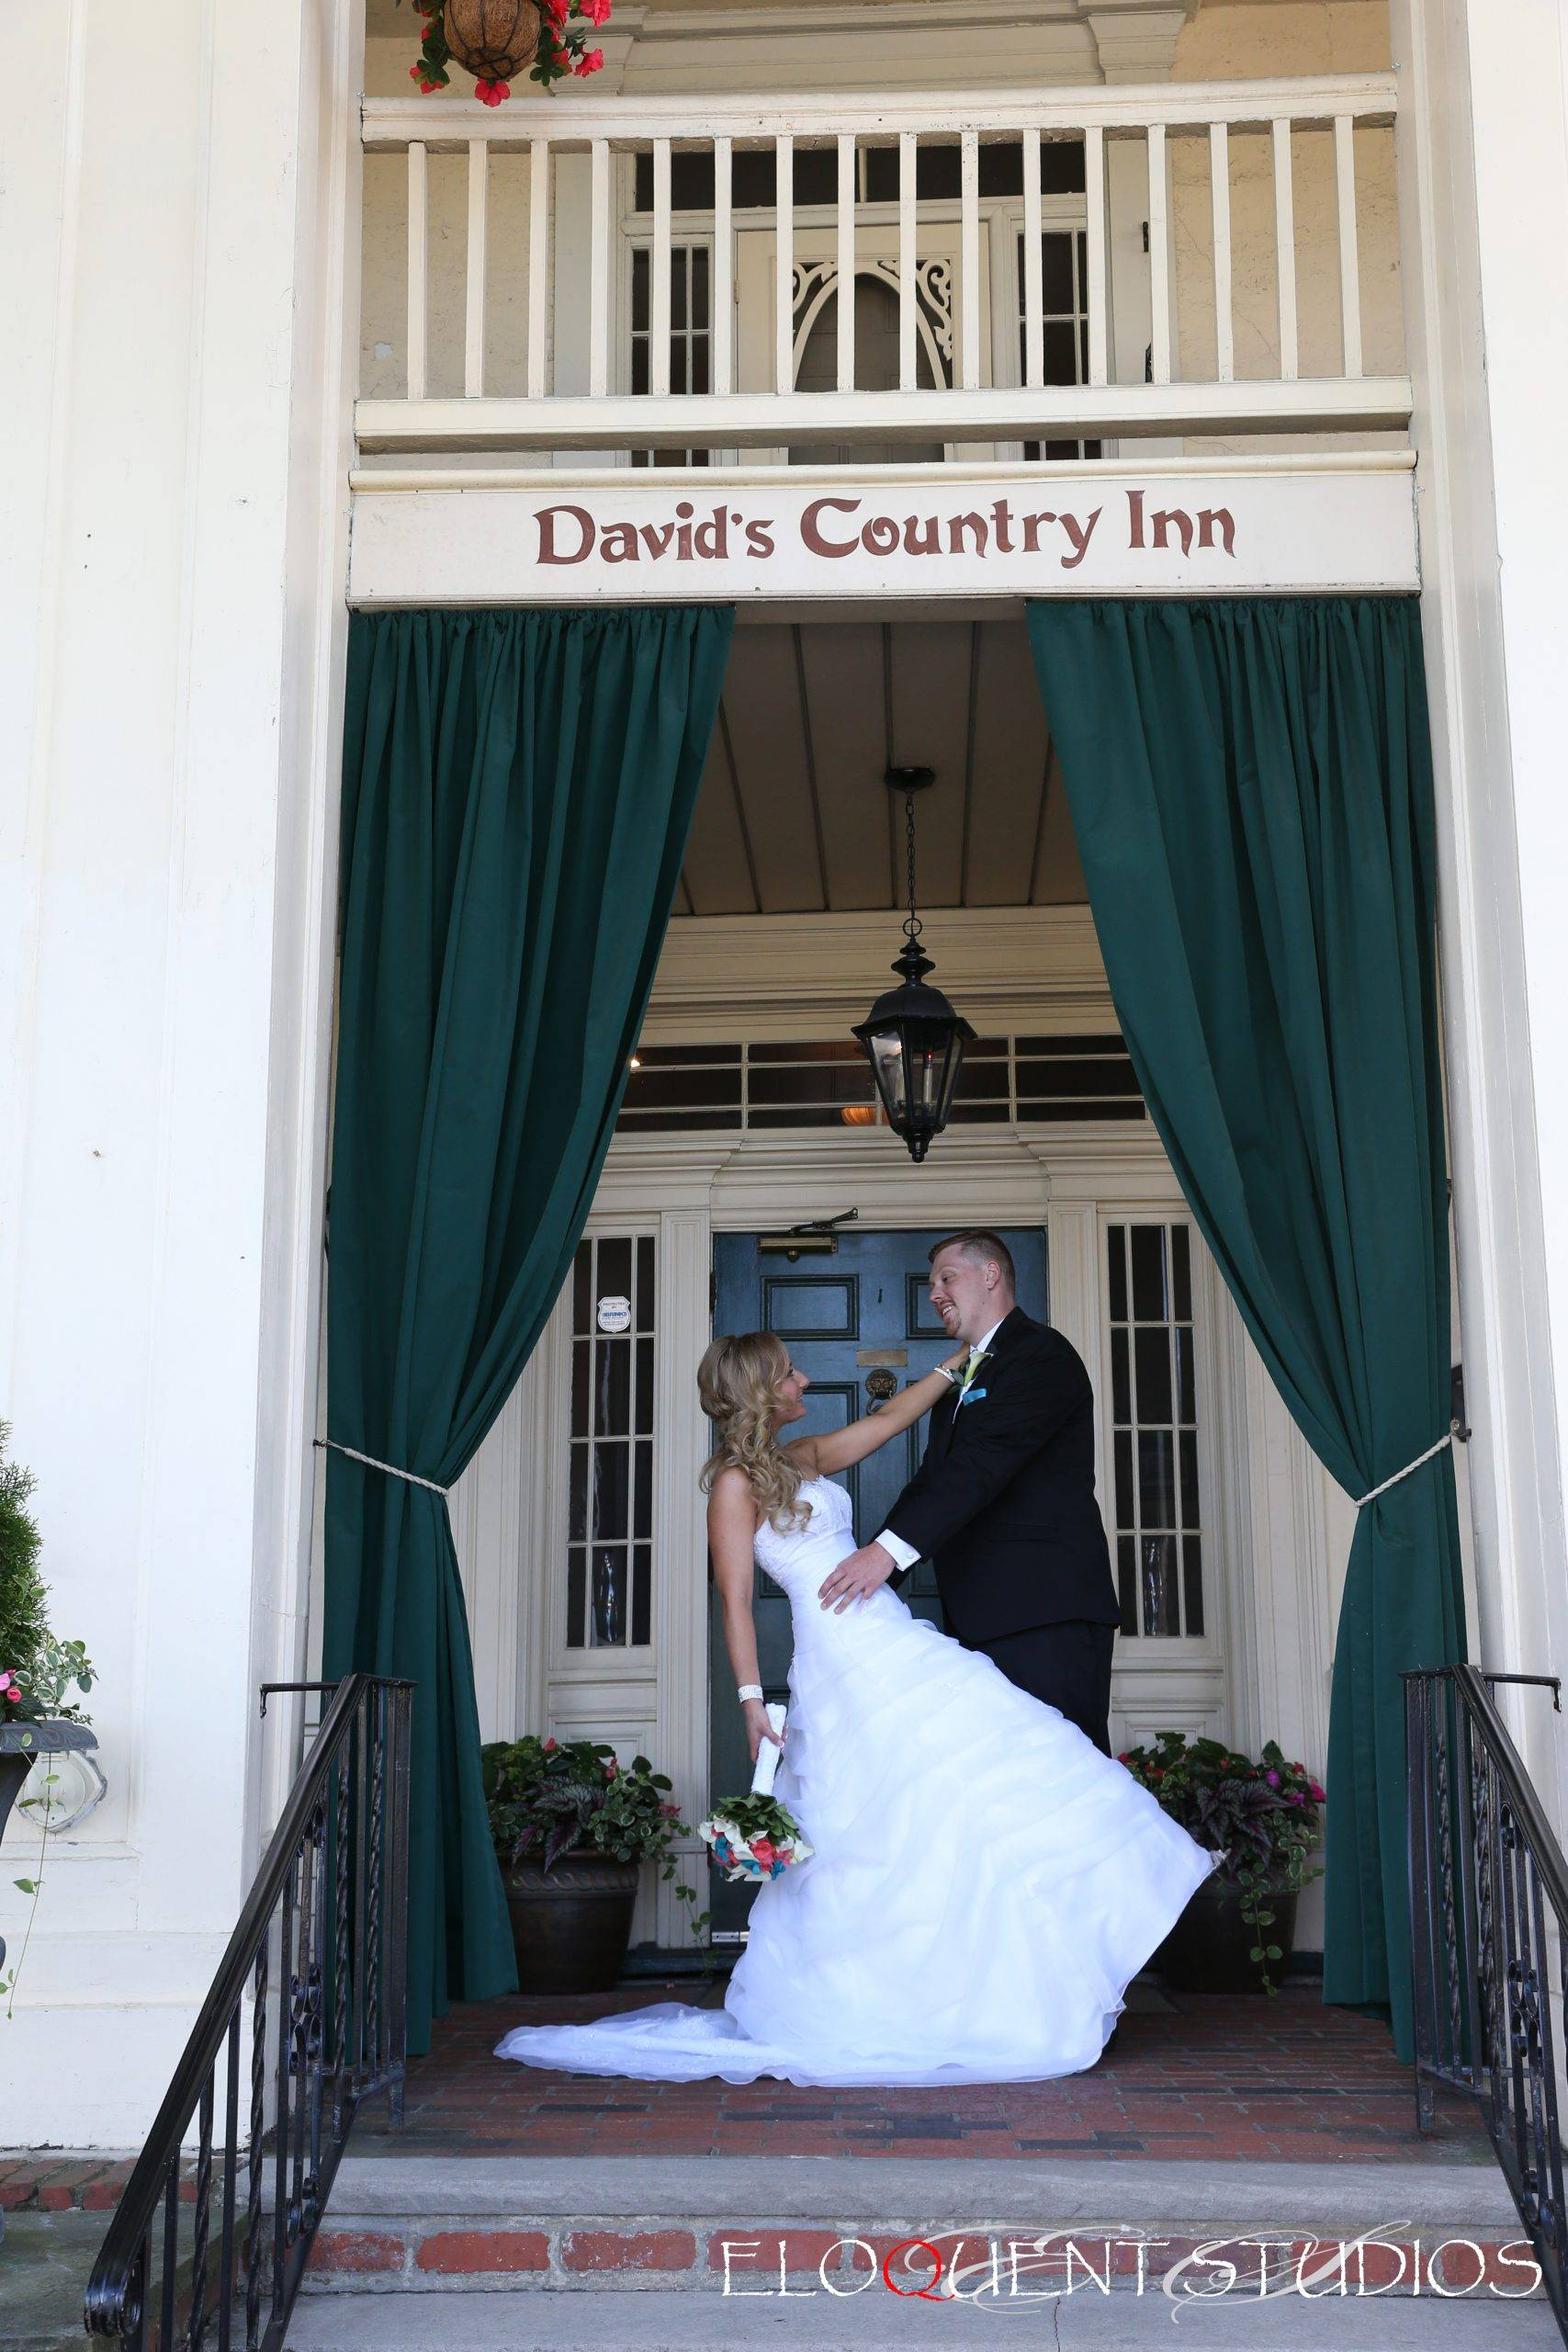 David's Country Inn bride and groom at front door